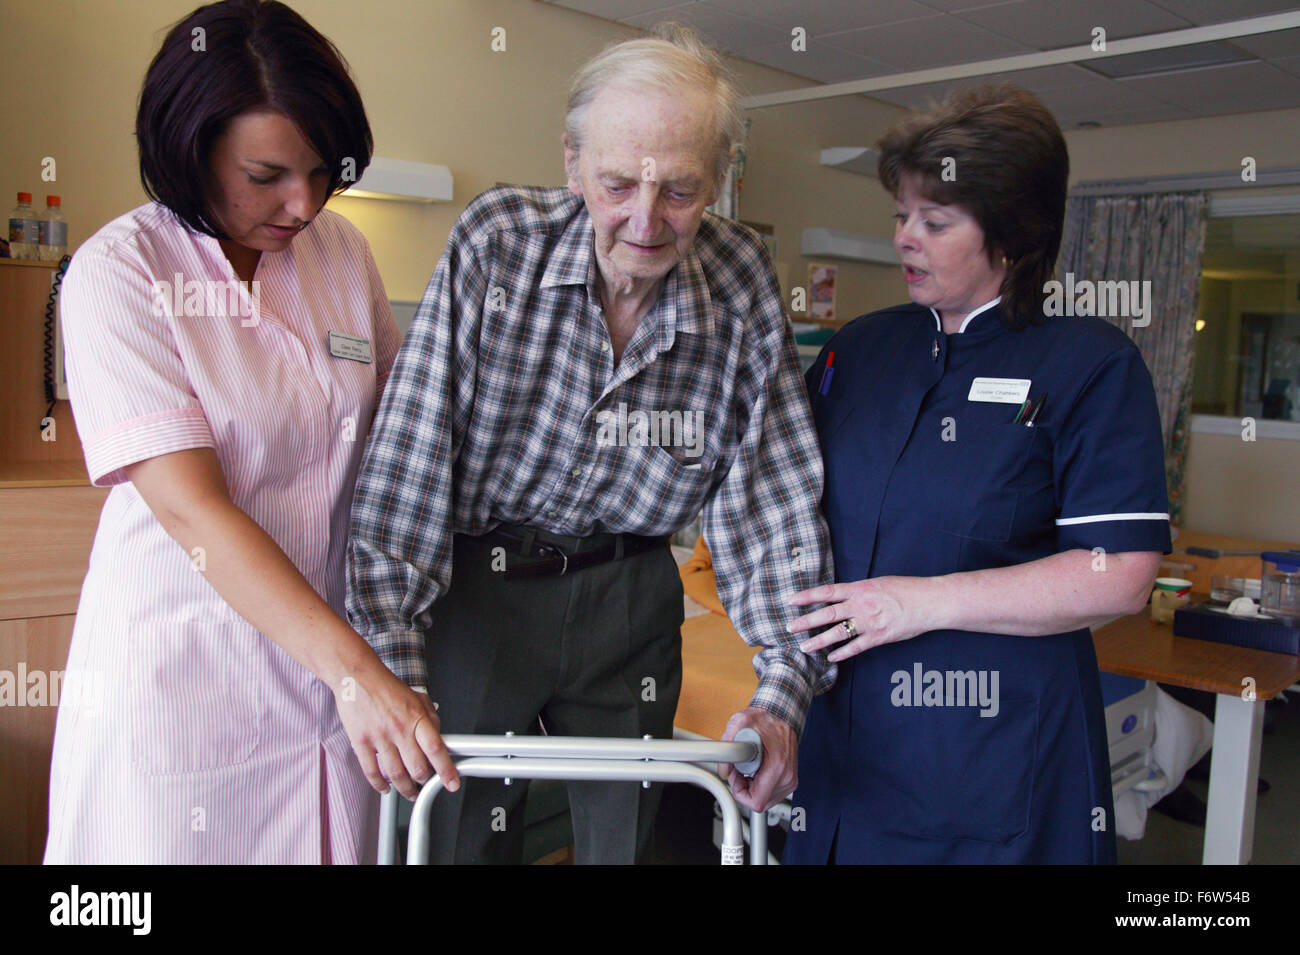 nurse with disability and health care worker assisting elderly